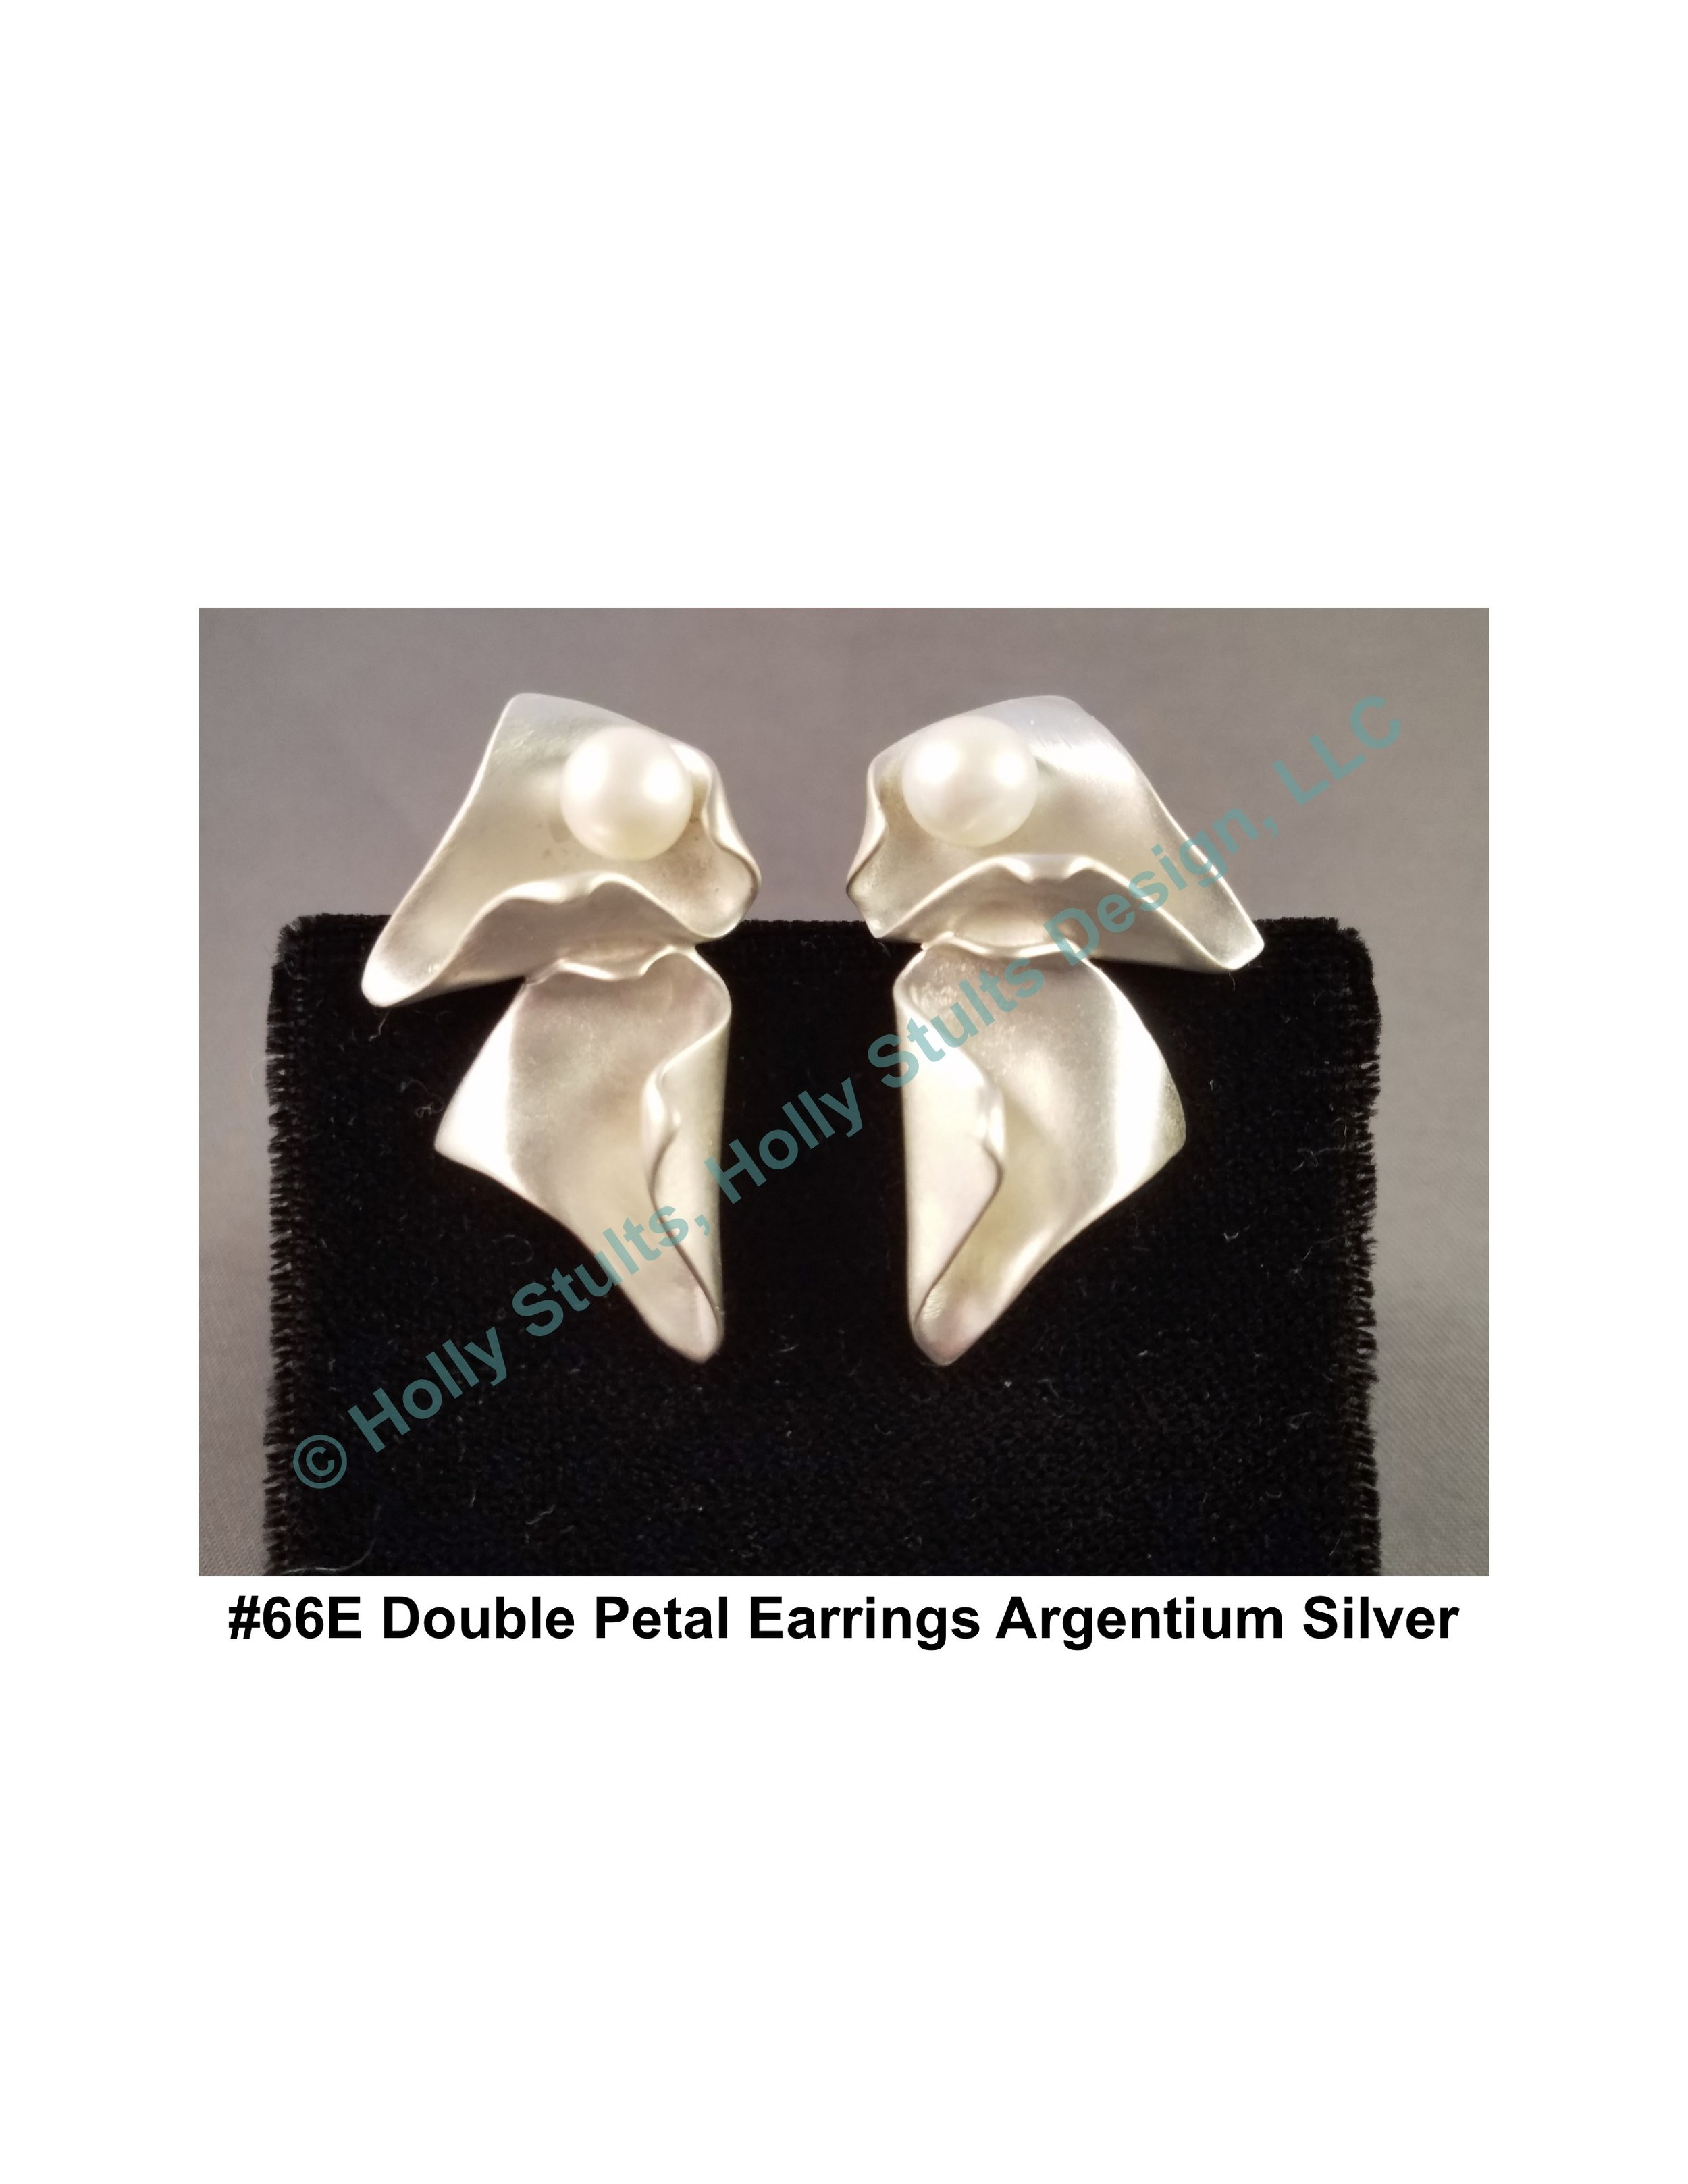 #66E Double Petal Earrings Argentium Silver.jpg